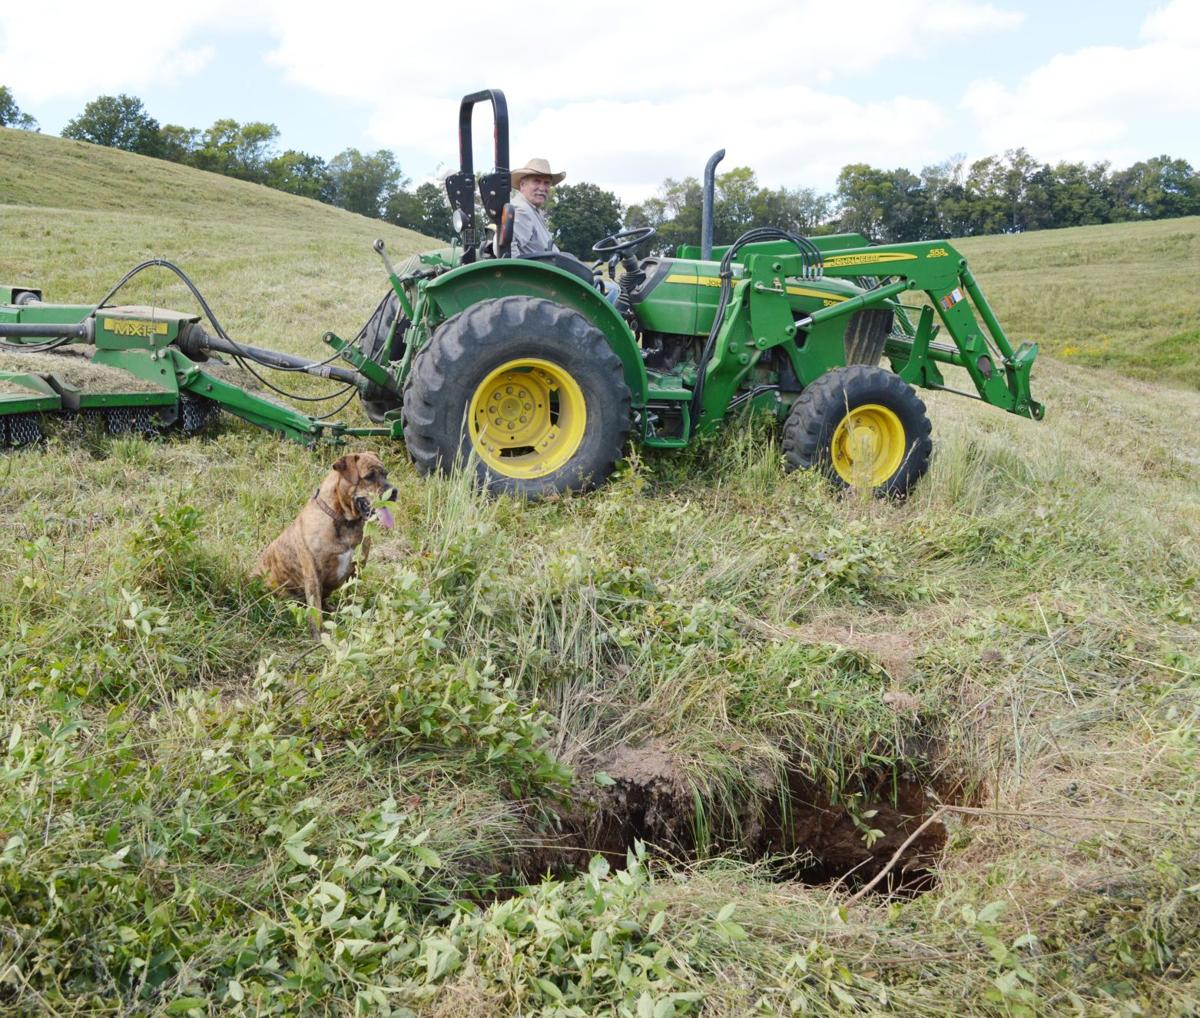 Sinkhole nearly swallows tractor